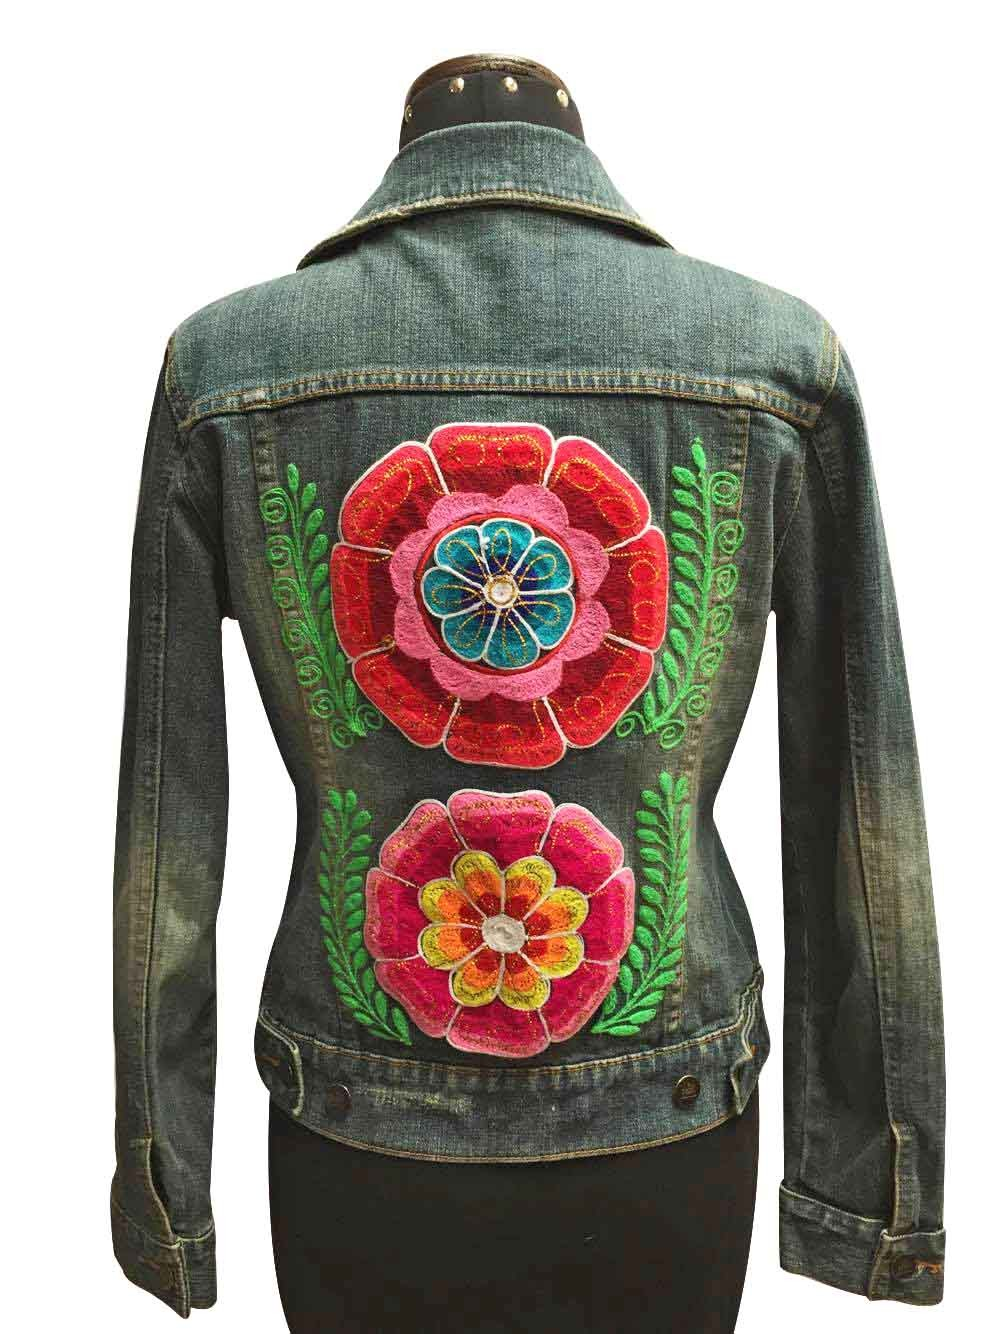 Embroidered jean jacket, flowers - Size M